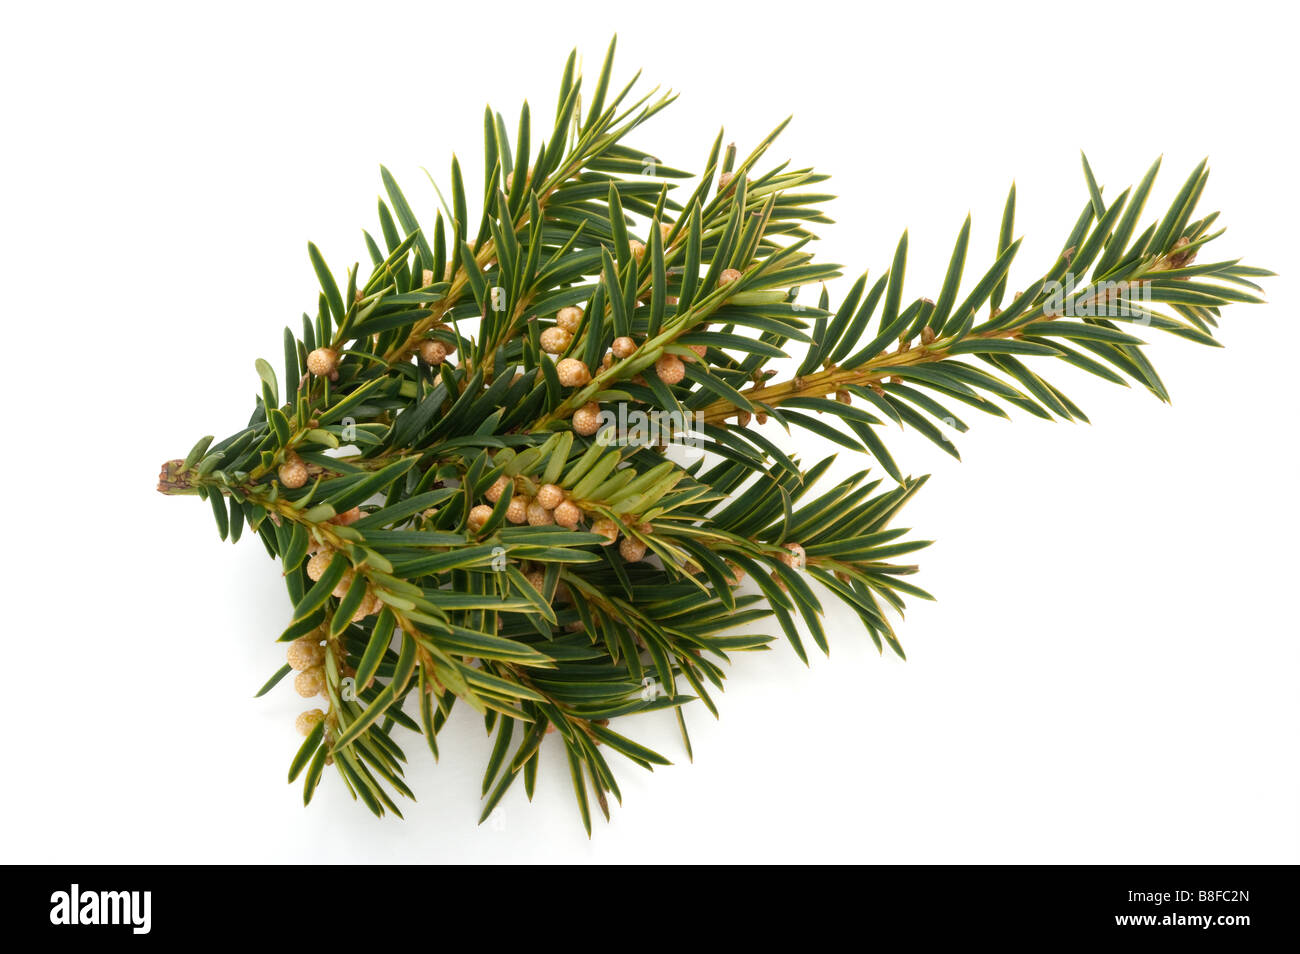 taxus baccata - Stock Image